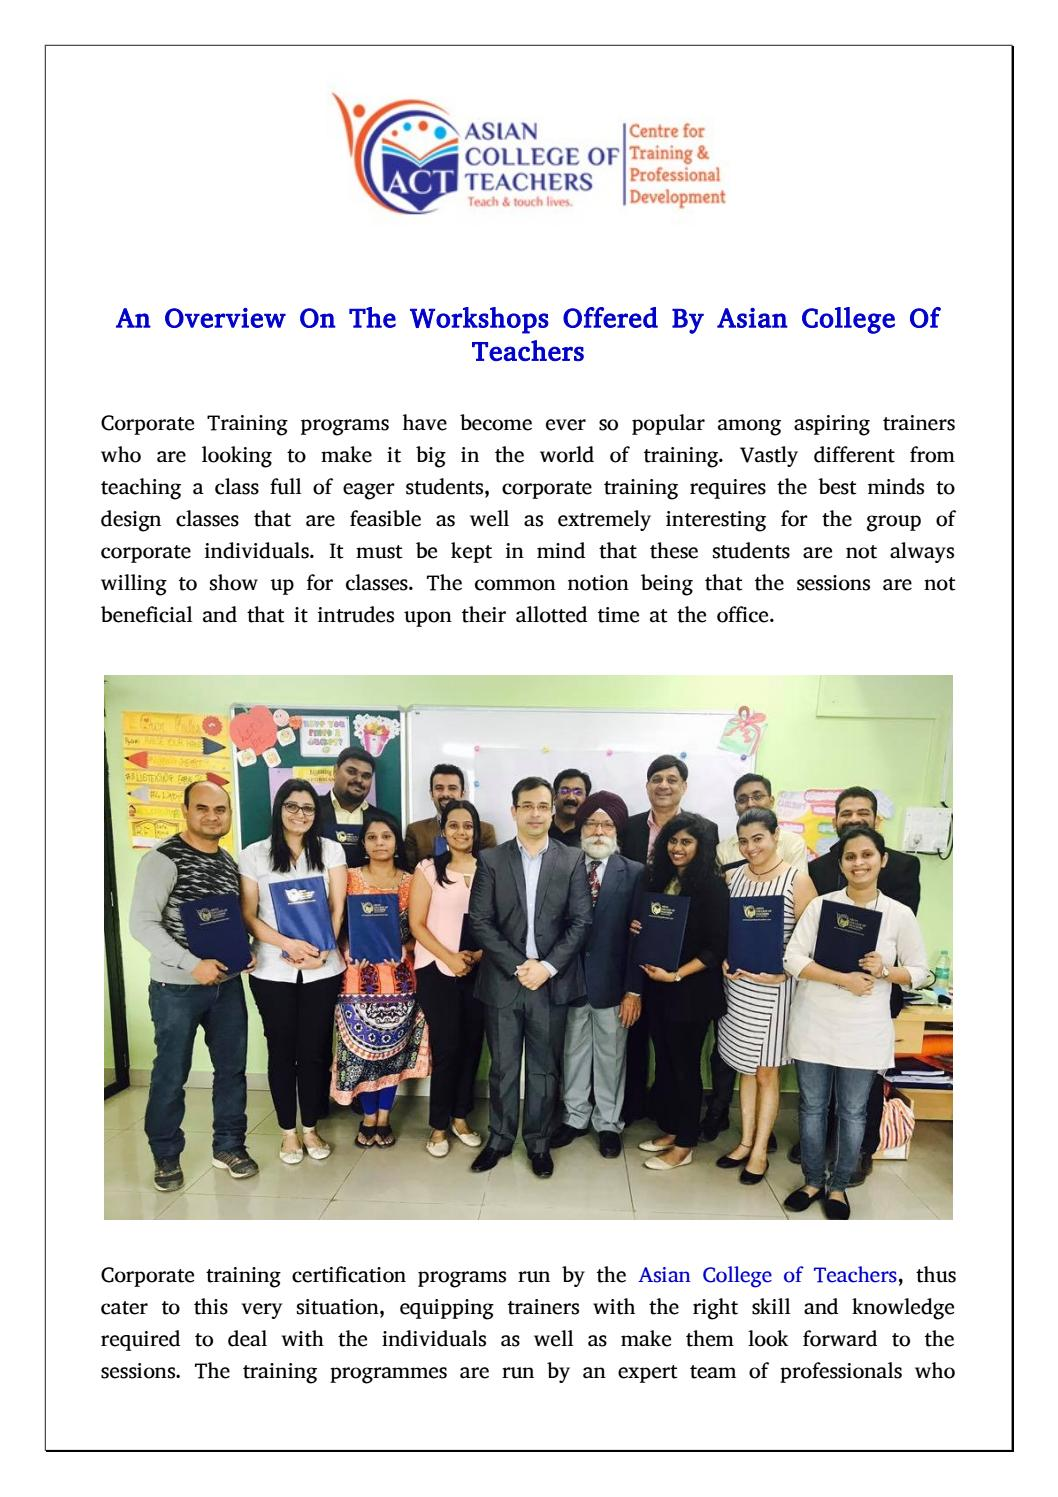 Workshop Offered By Asian College Of Teachers For Corporate Trainers